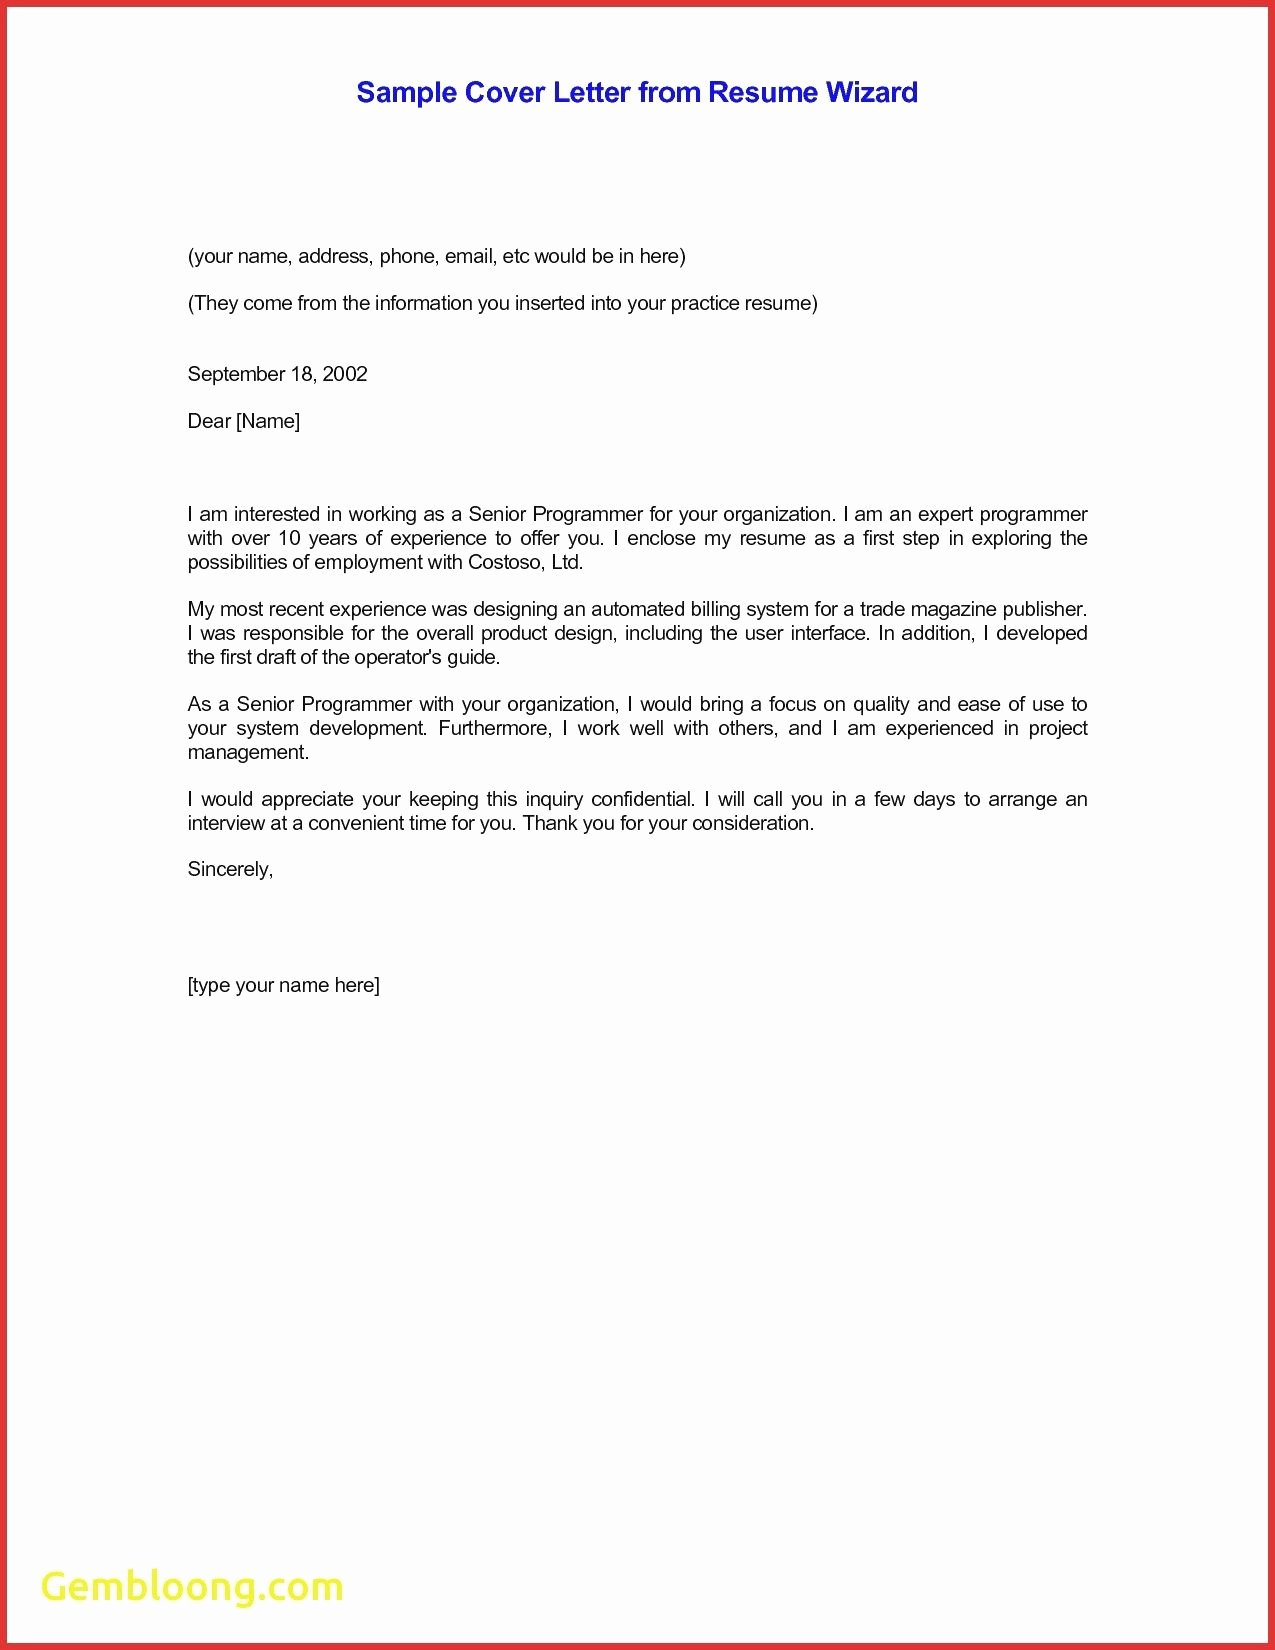 Email Cover Letter Templates Lovely Email Cv Cover Letter Template